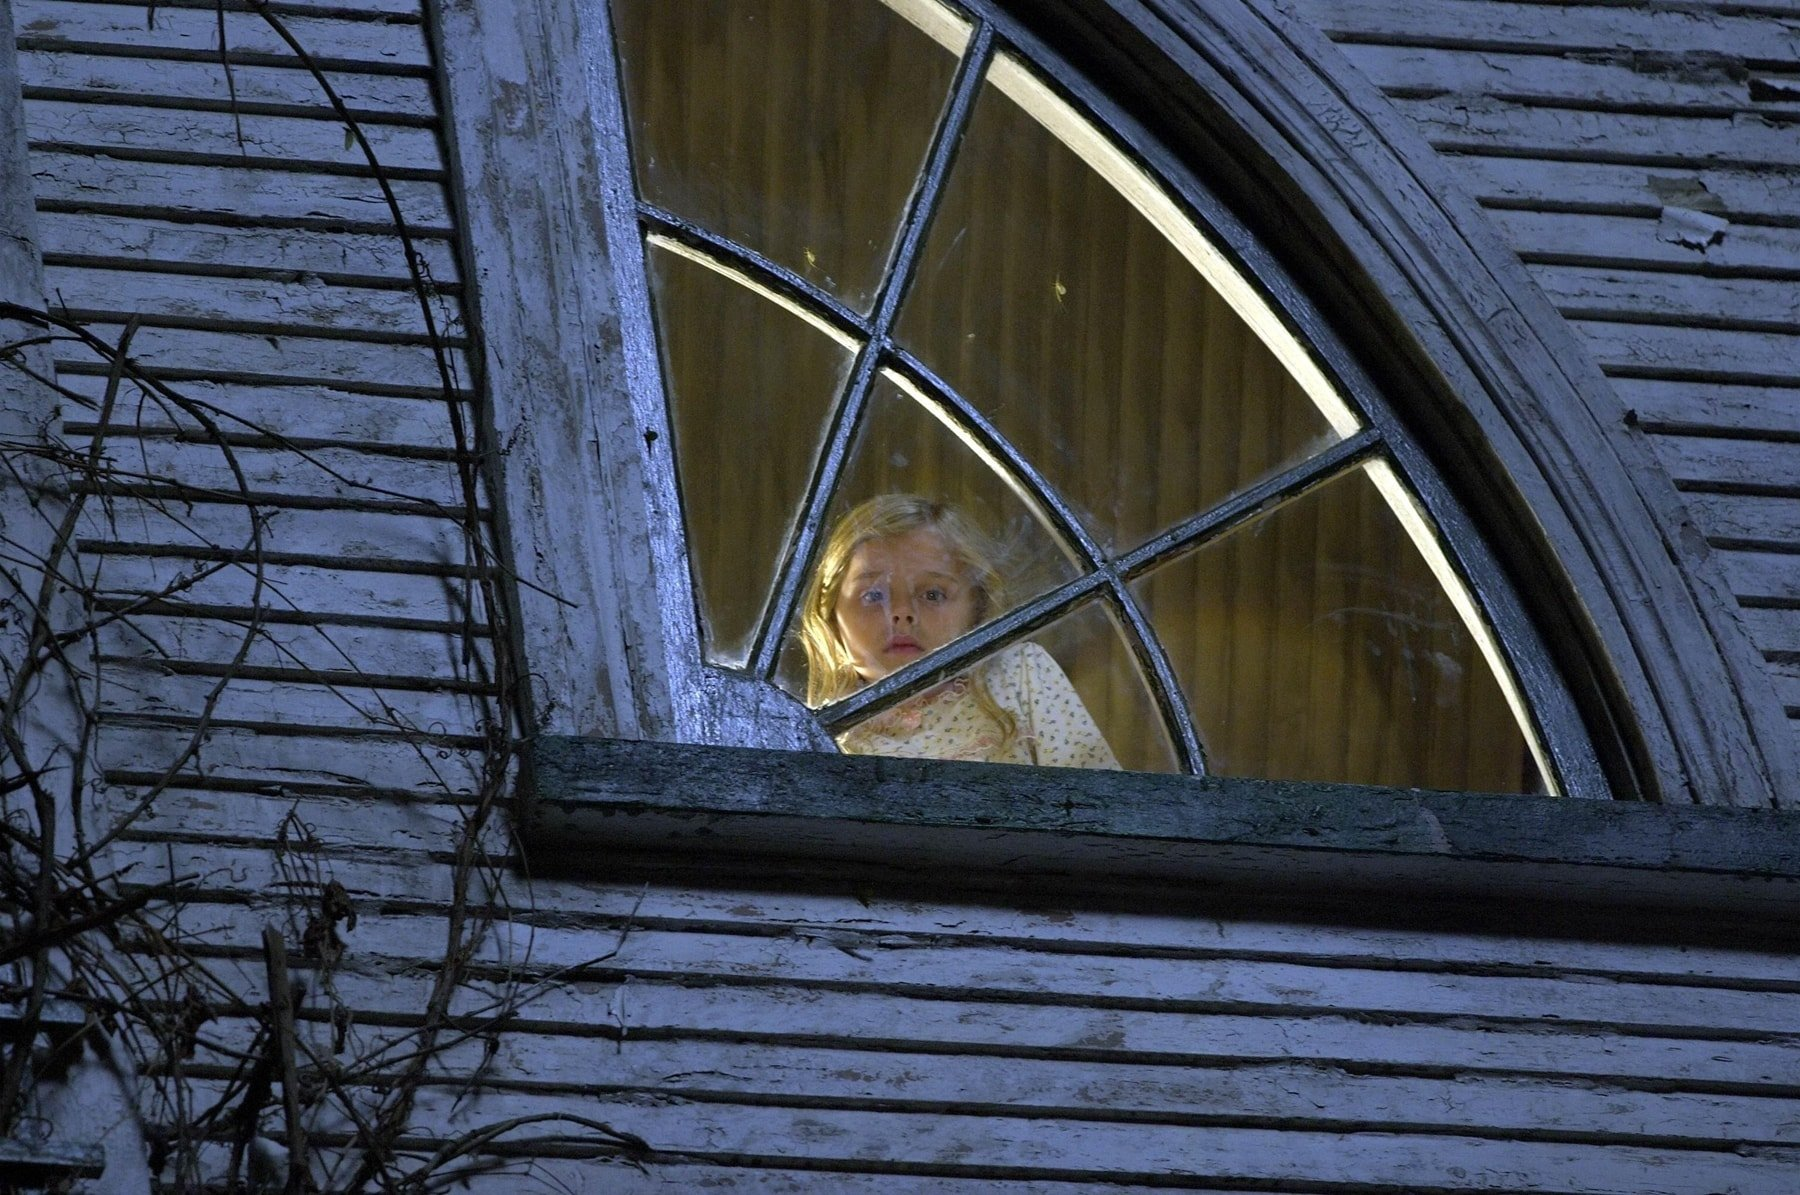 Chloë Grace Moretz was 7 years old when filming the supernatural horror film The Amityville Horror as Chelsea Lutz